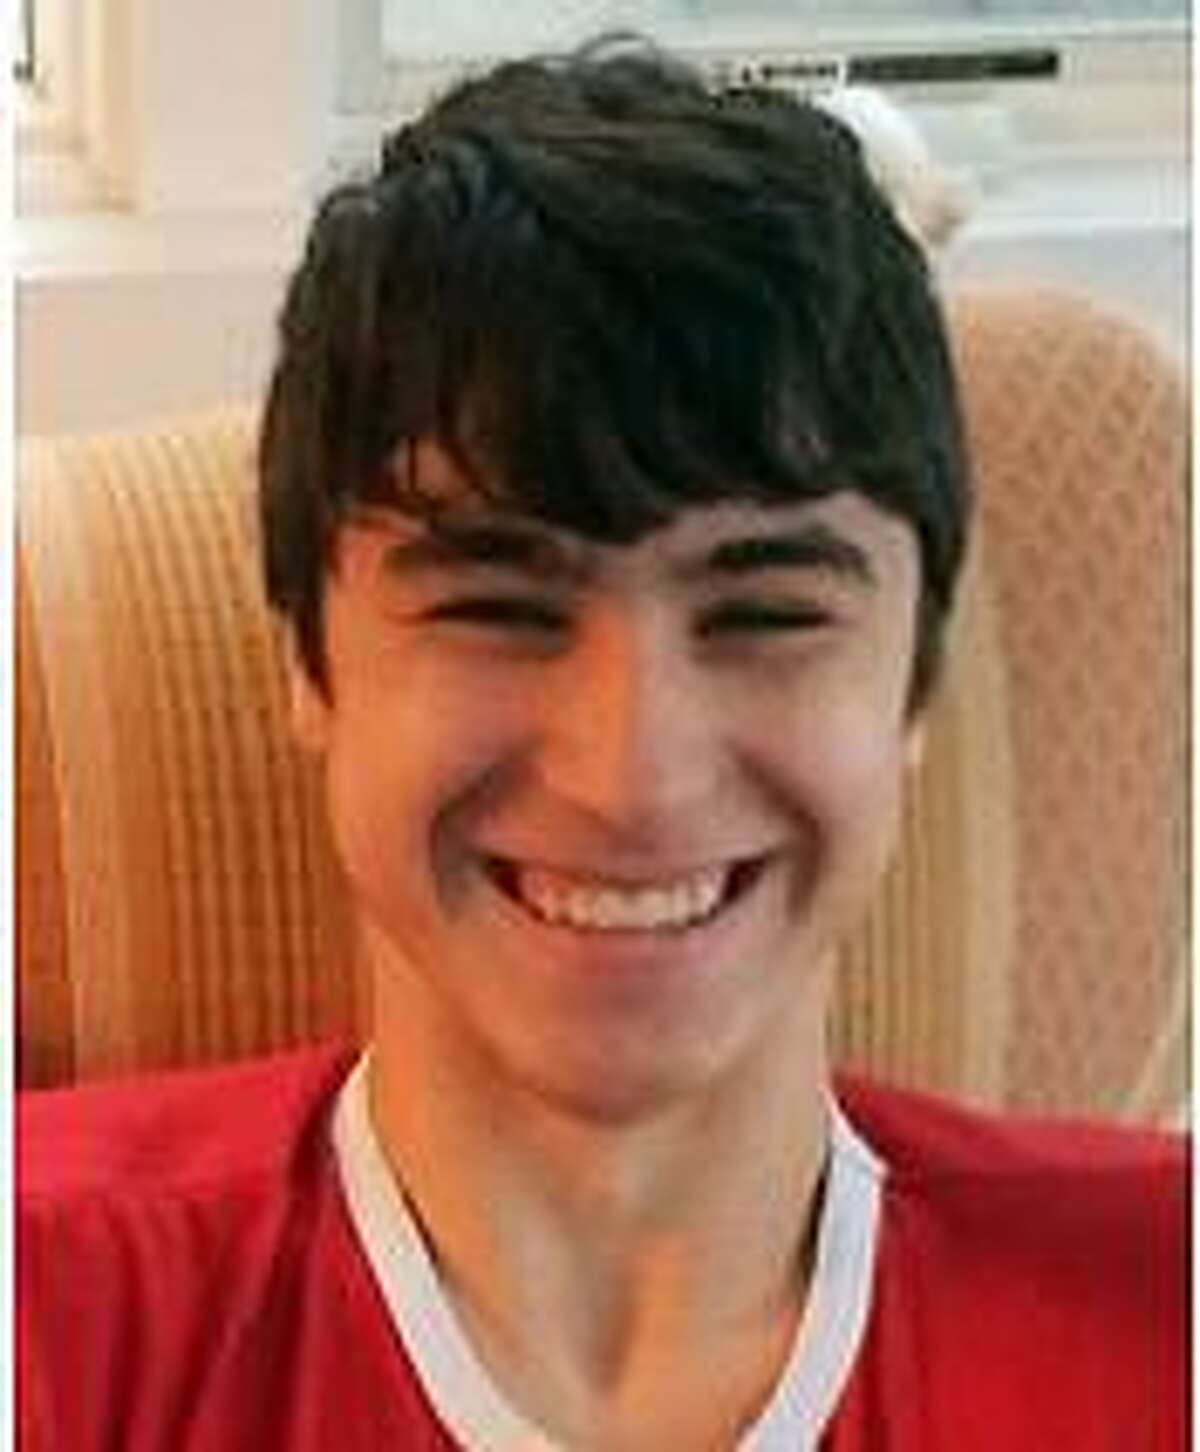 Saratoga County Sheriff's deputies are looking for 15-year-old Clifton Park teen Henry Ytterberg who went missing on Feb. 11, 2015. (provided photo)